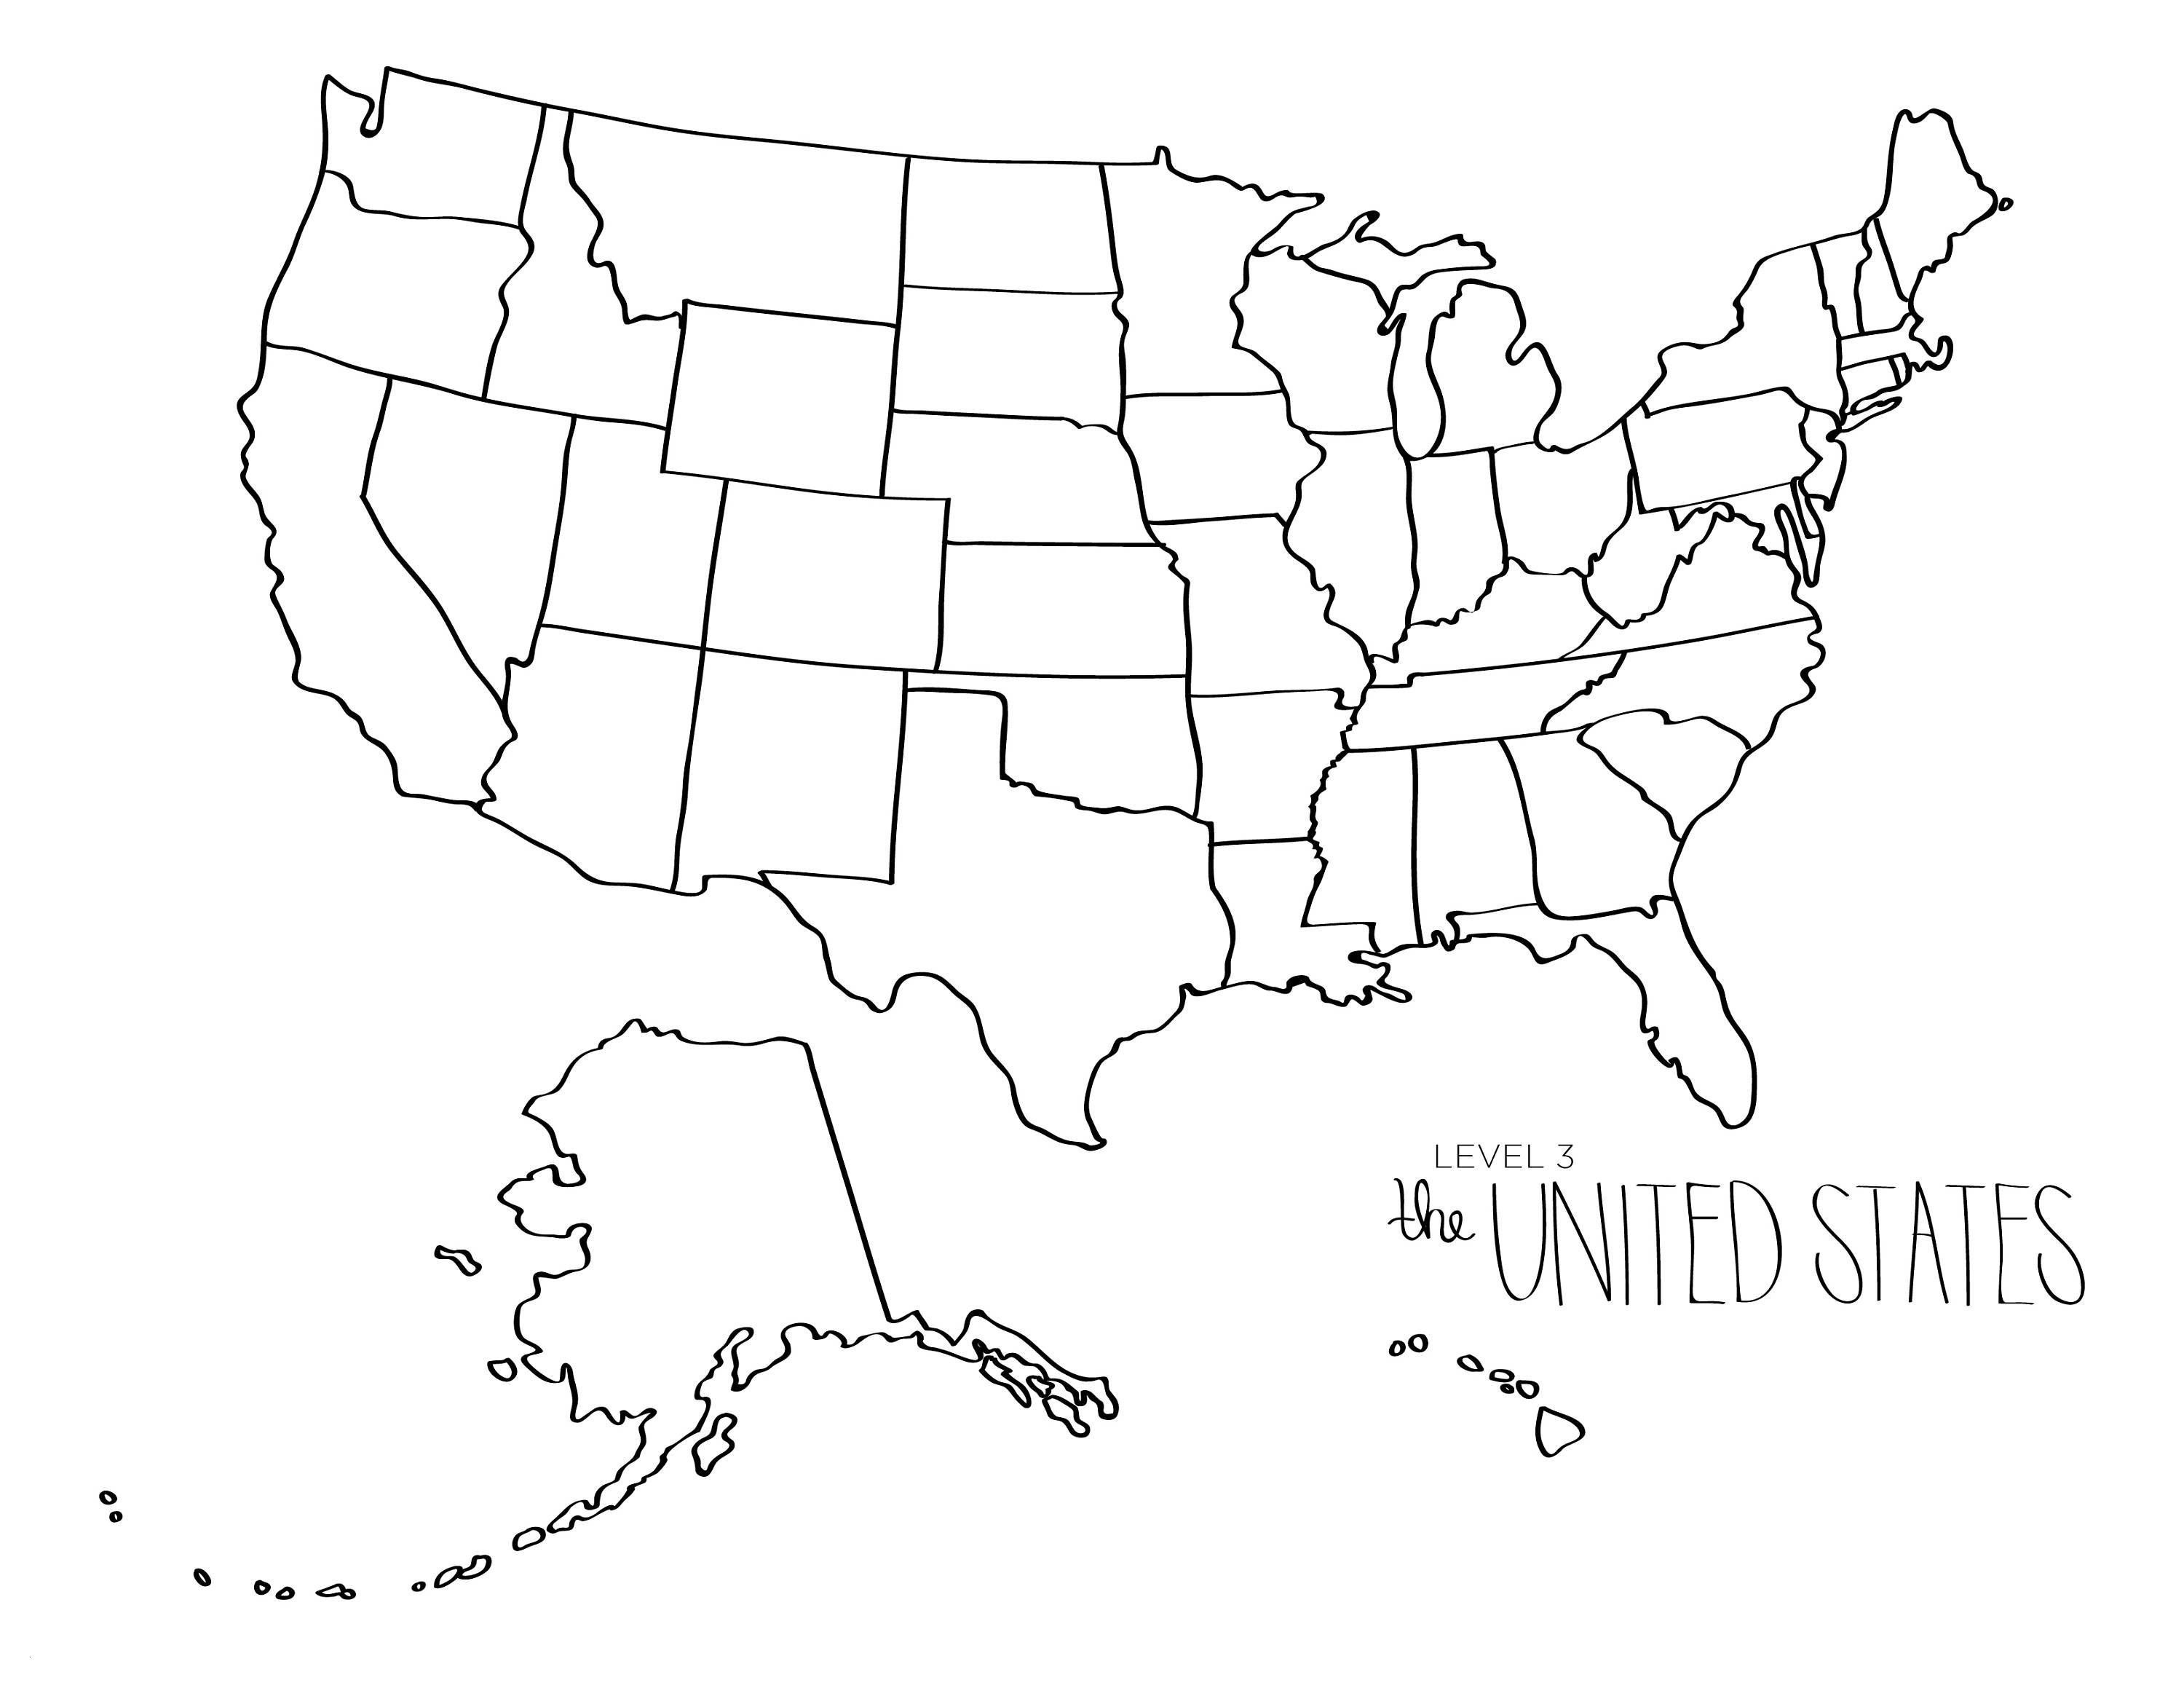 Basic Printable Map Of The United States Luxury United States Blank Map Printable Save United States Map Coloring